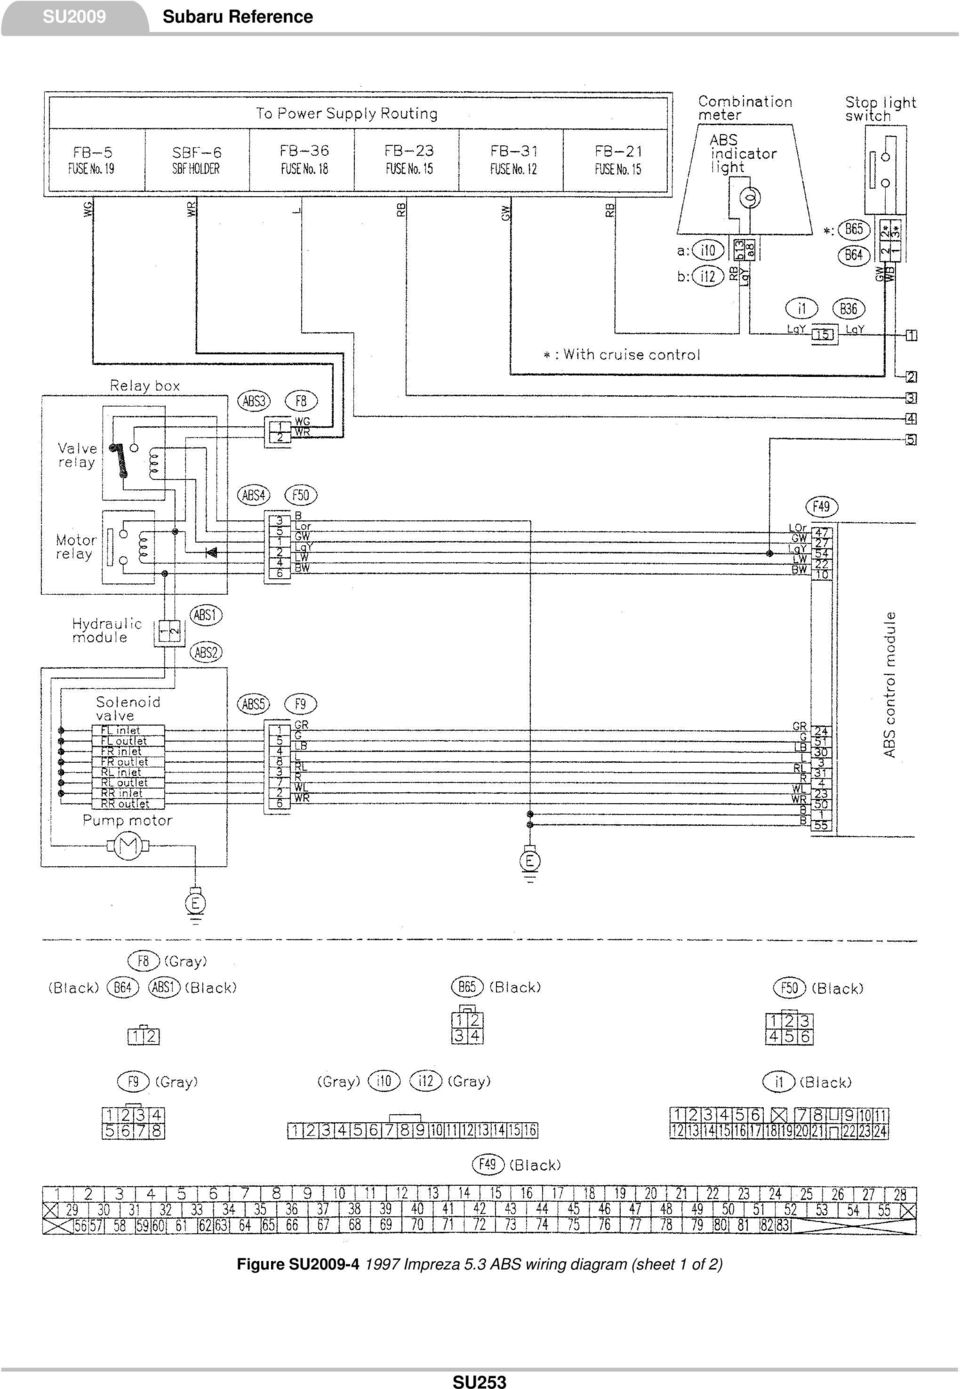 subaru reference. this reference contains the following ... ab 11 pin relay wiring diagram 12 pin relay wiring diagram